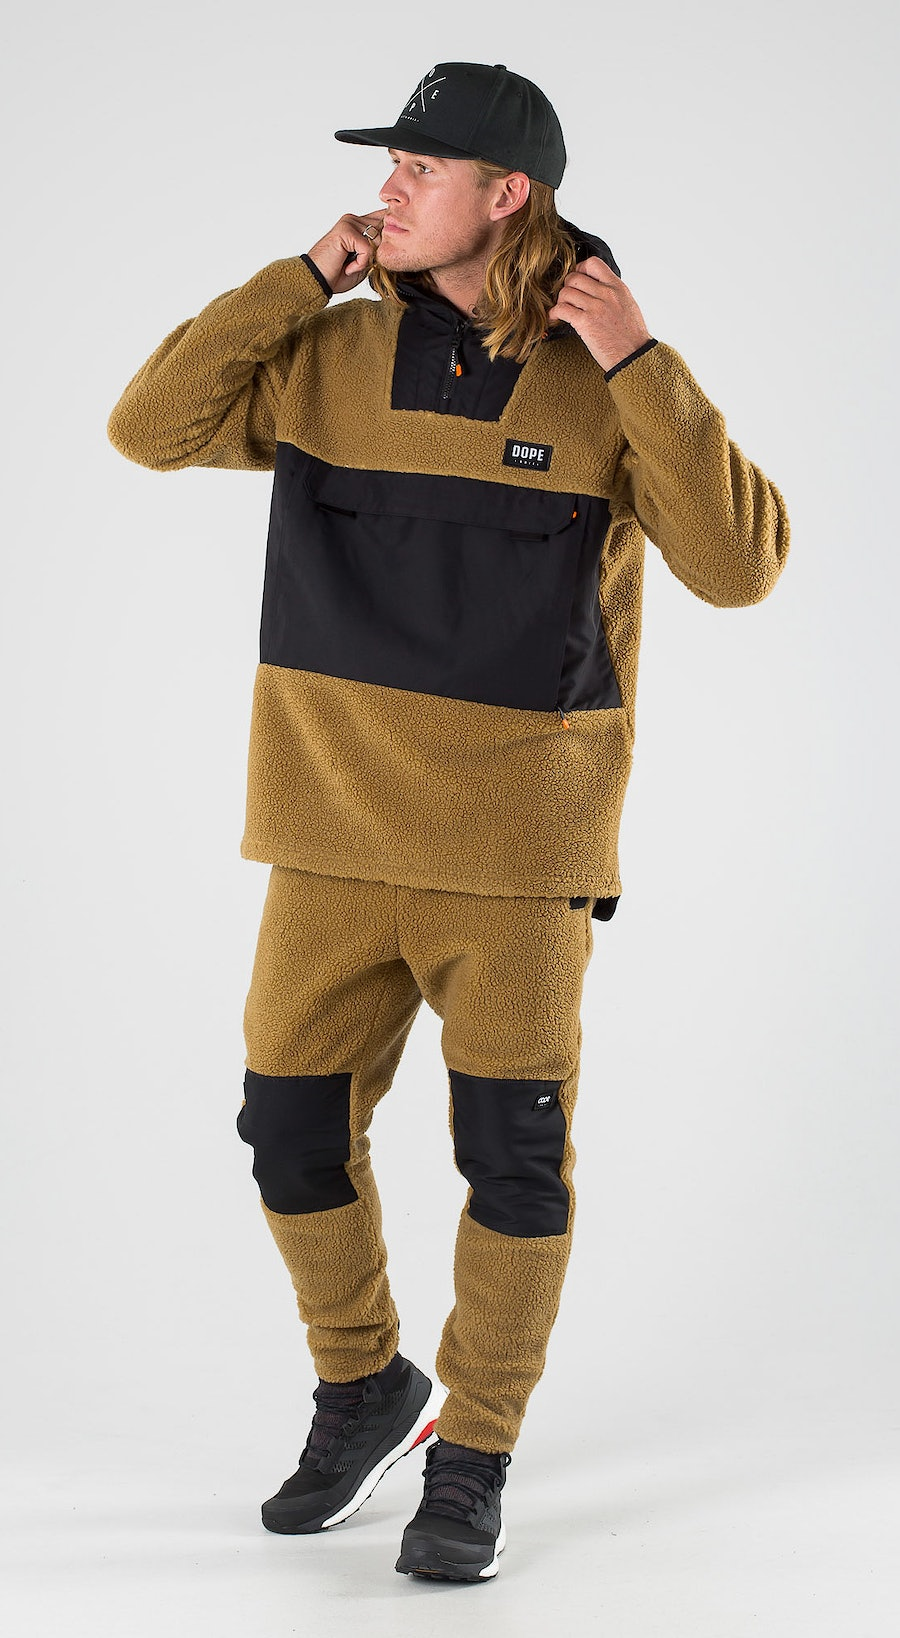 Dope Oi Black/Gold Outfit Multi